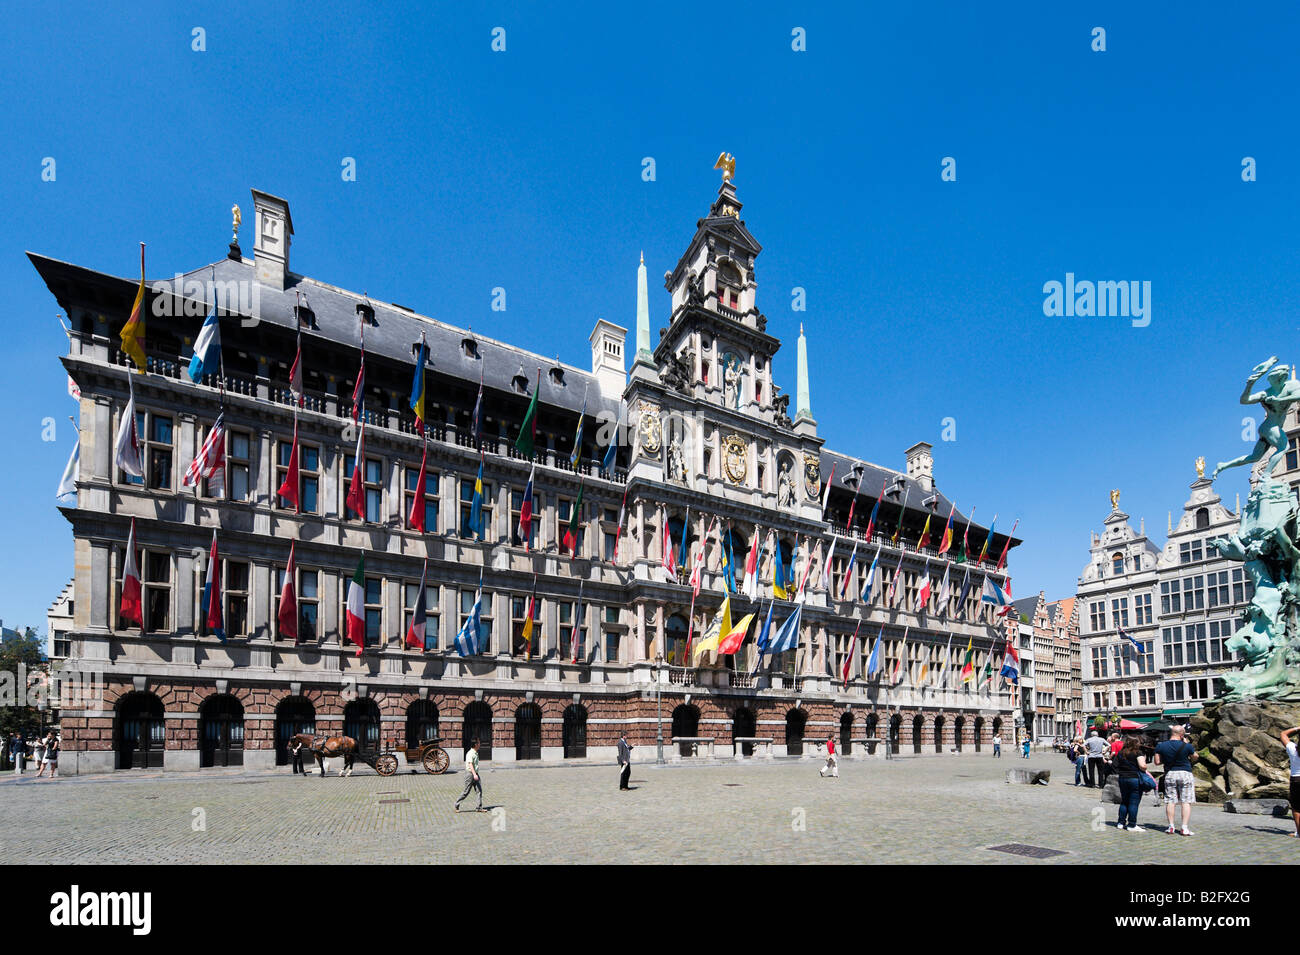 The Stadhuis and Brabo Fountain in the Grote (Markt Main) Square in the centre of the old town, Antwerp, Belgium - Stock Image